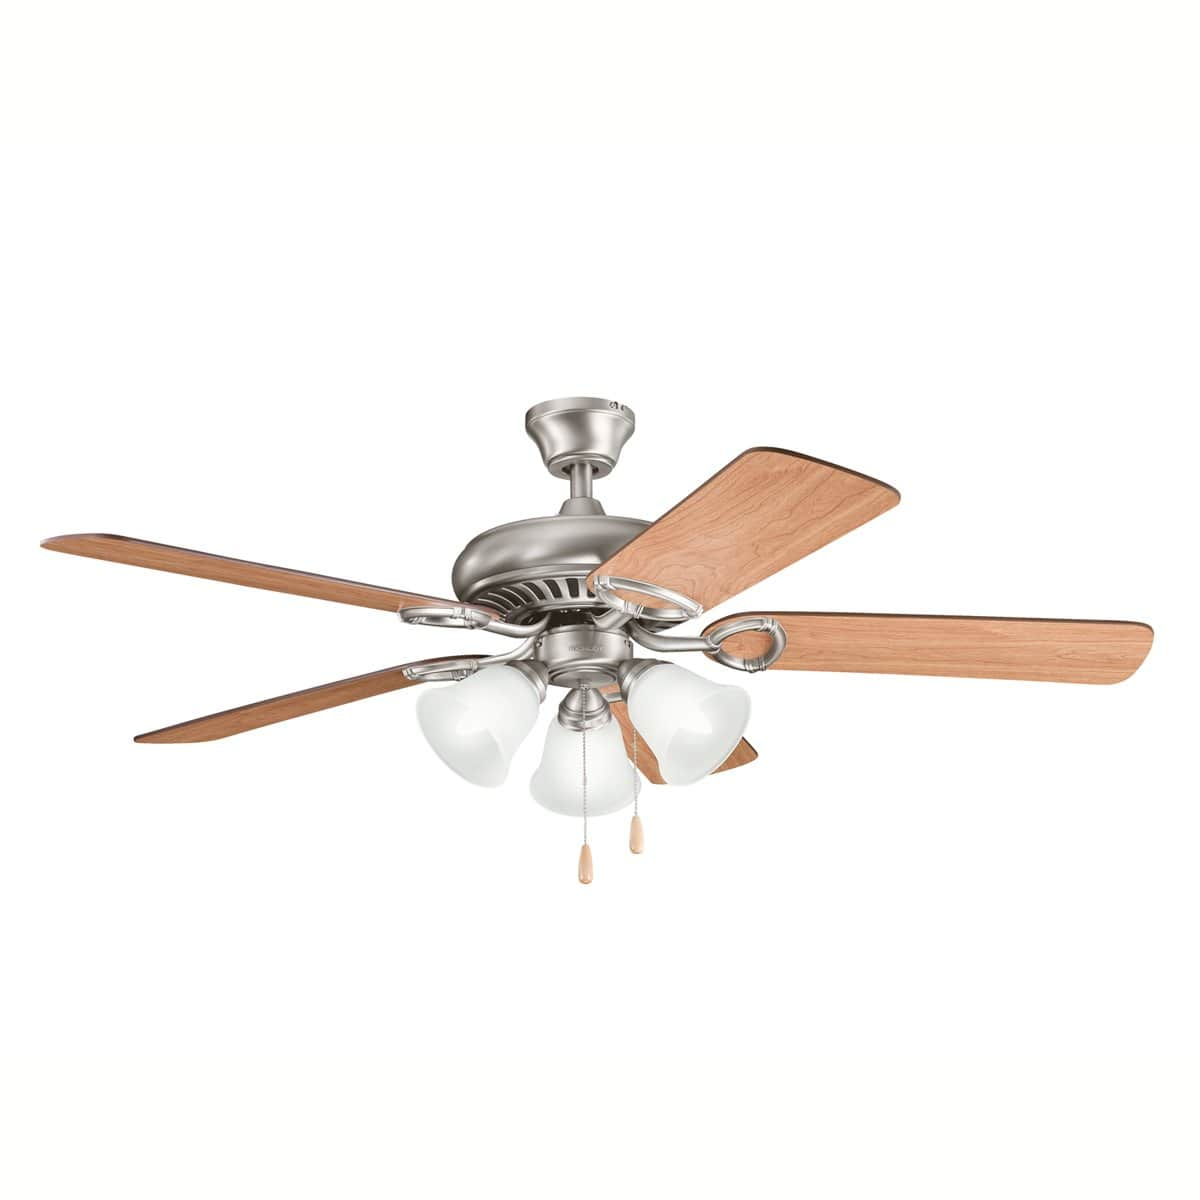 """Kichler Sutter Place 52"""" Premier Ceiling Fan w/ Light Kit $76 and More + Free Shipping"""